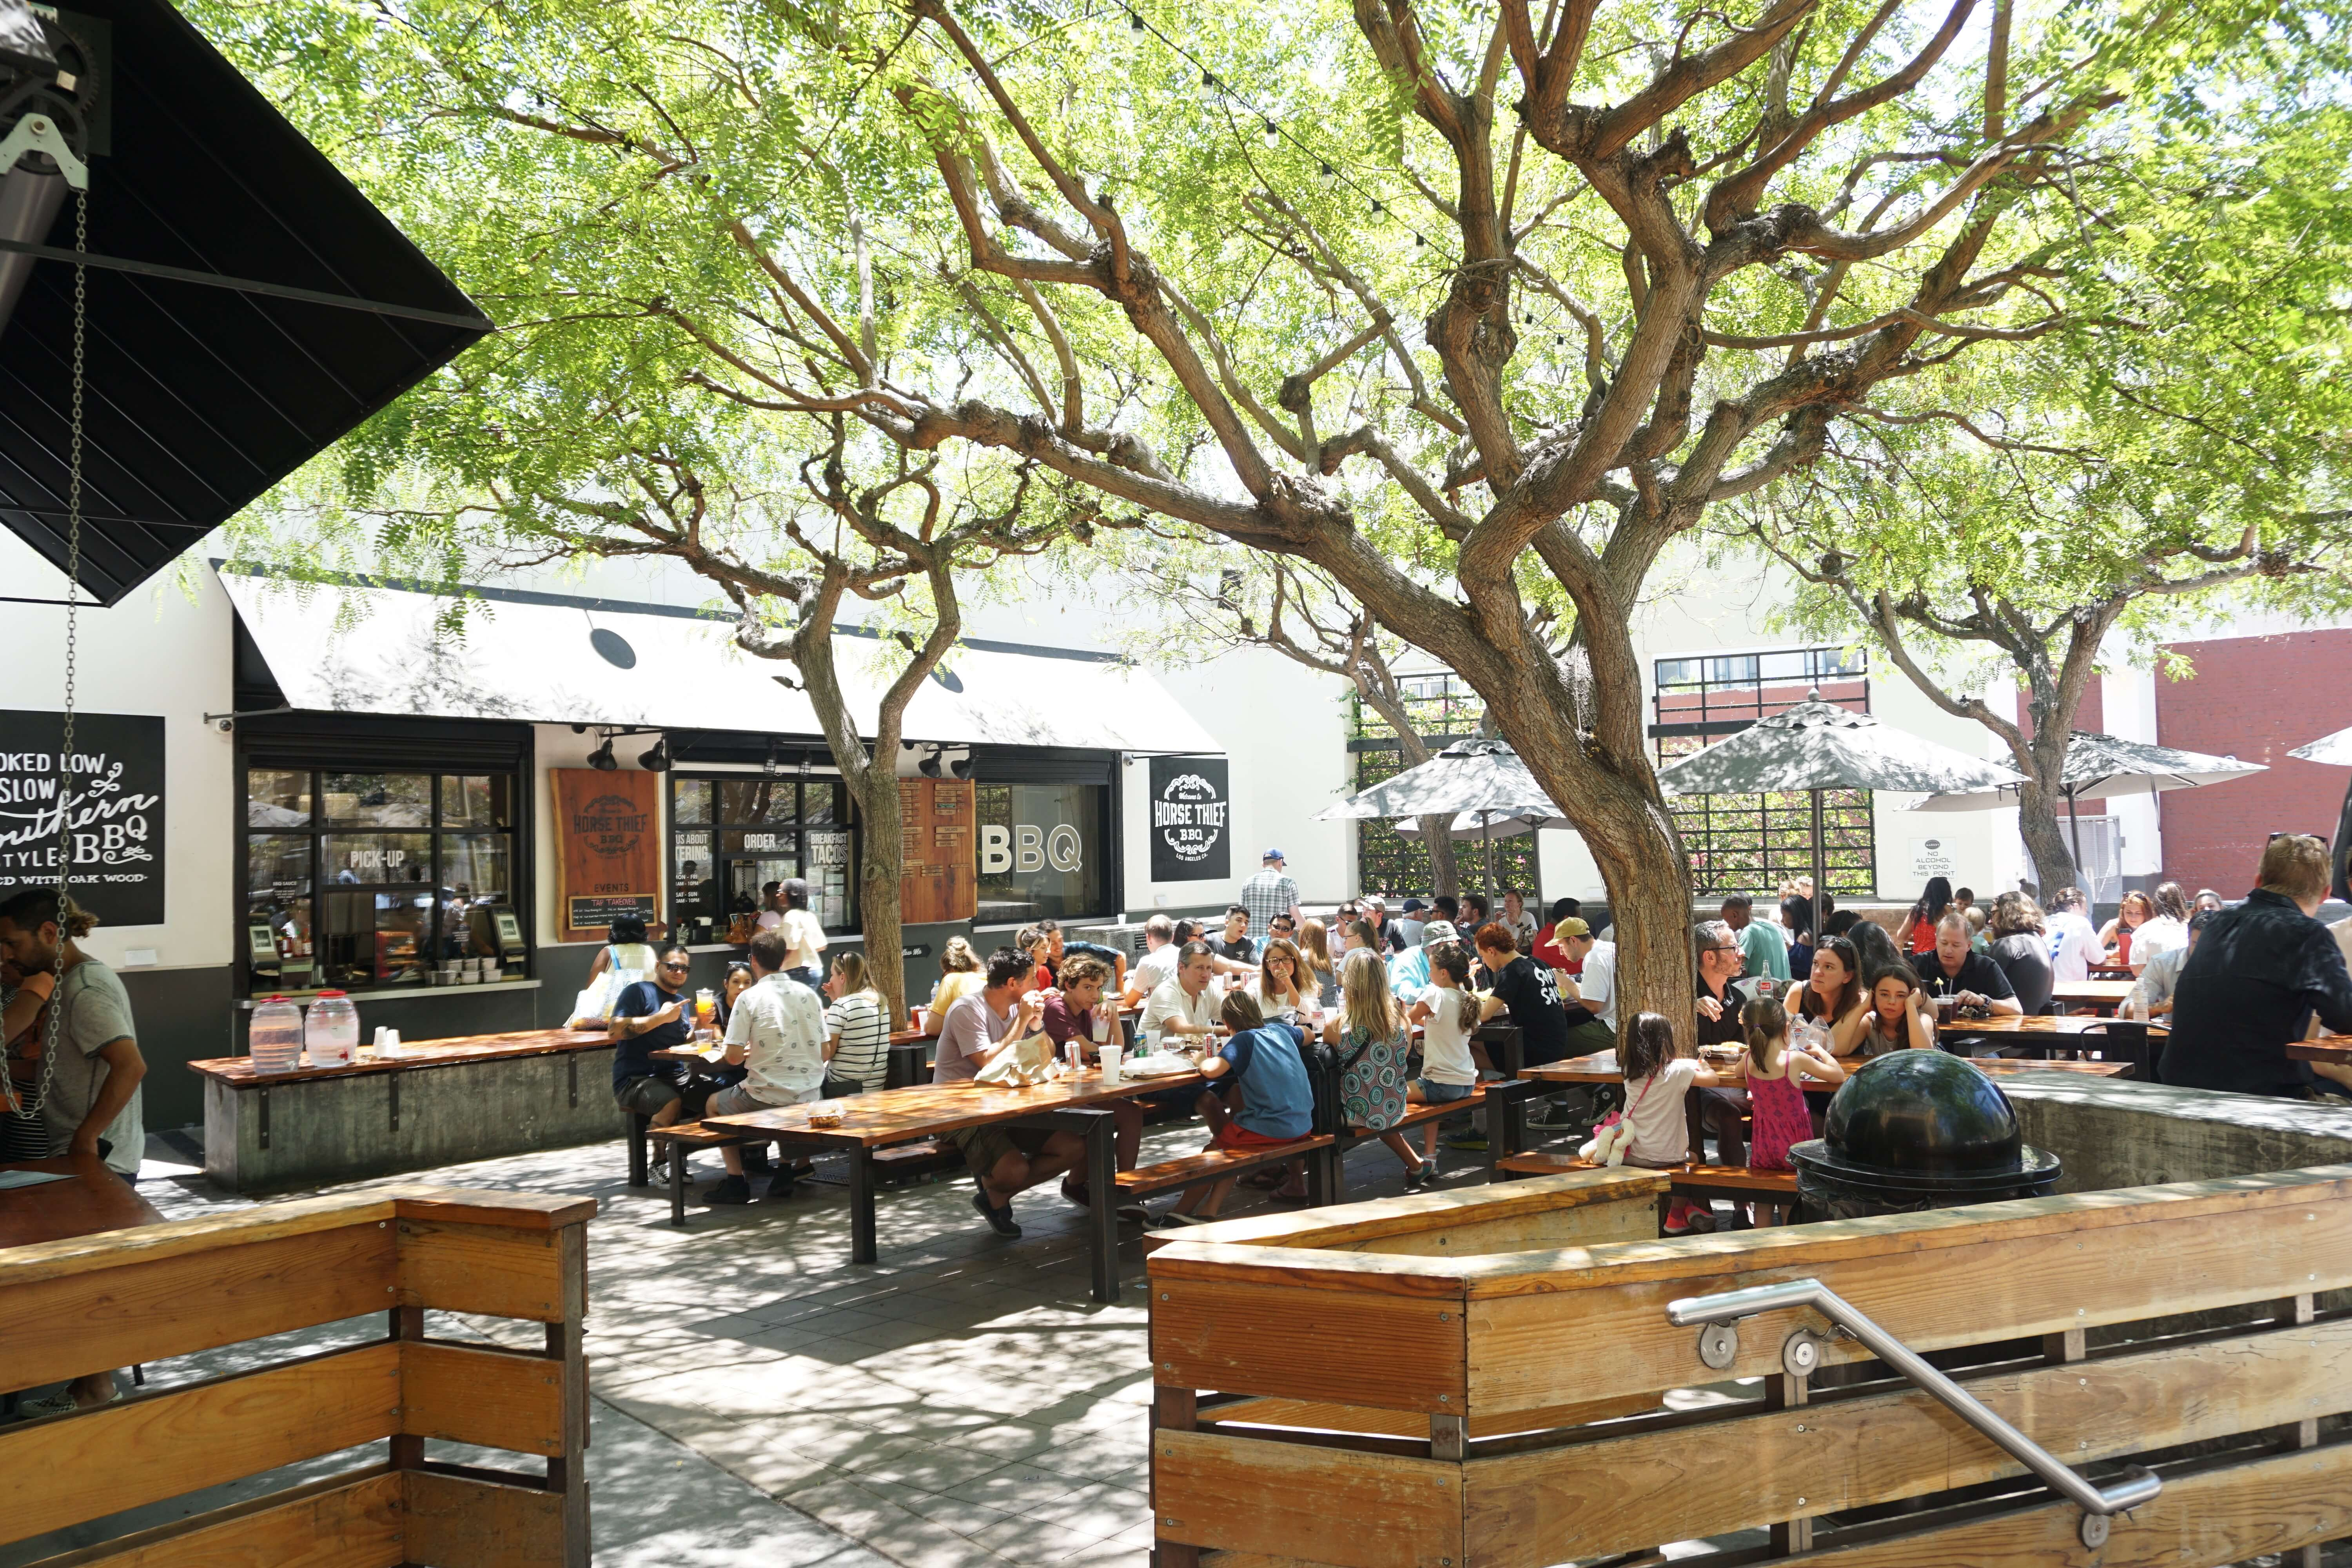 A view of the patio seating at Horse Thief BBQ next to Grand Central Market in Los Angeles